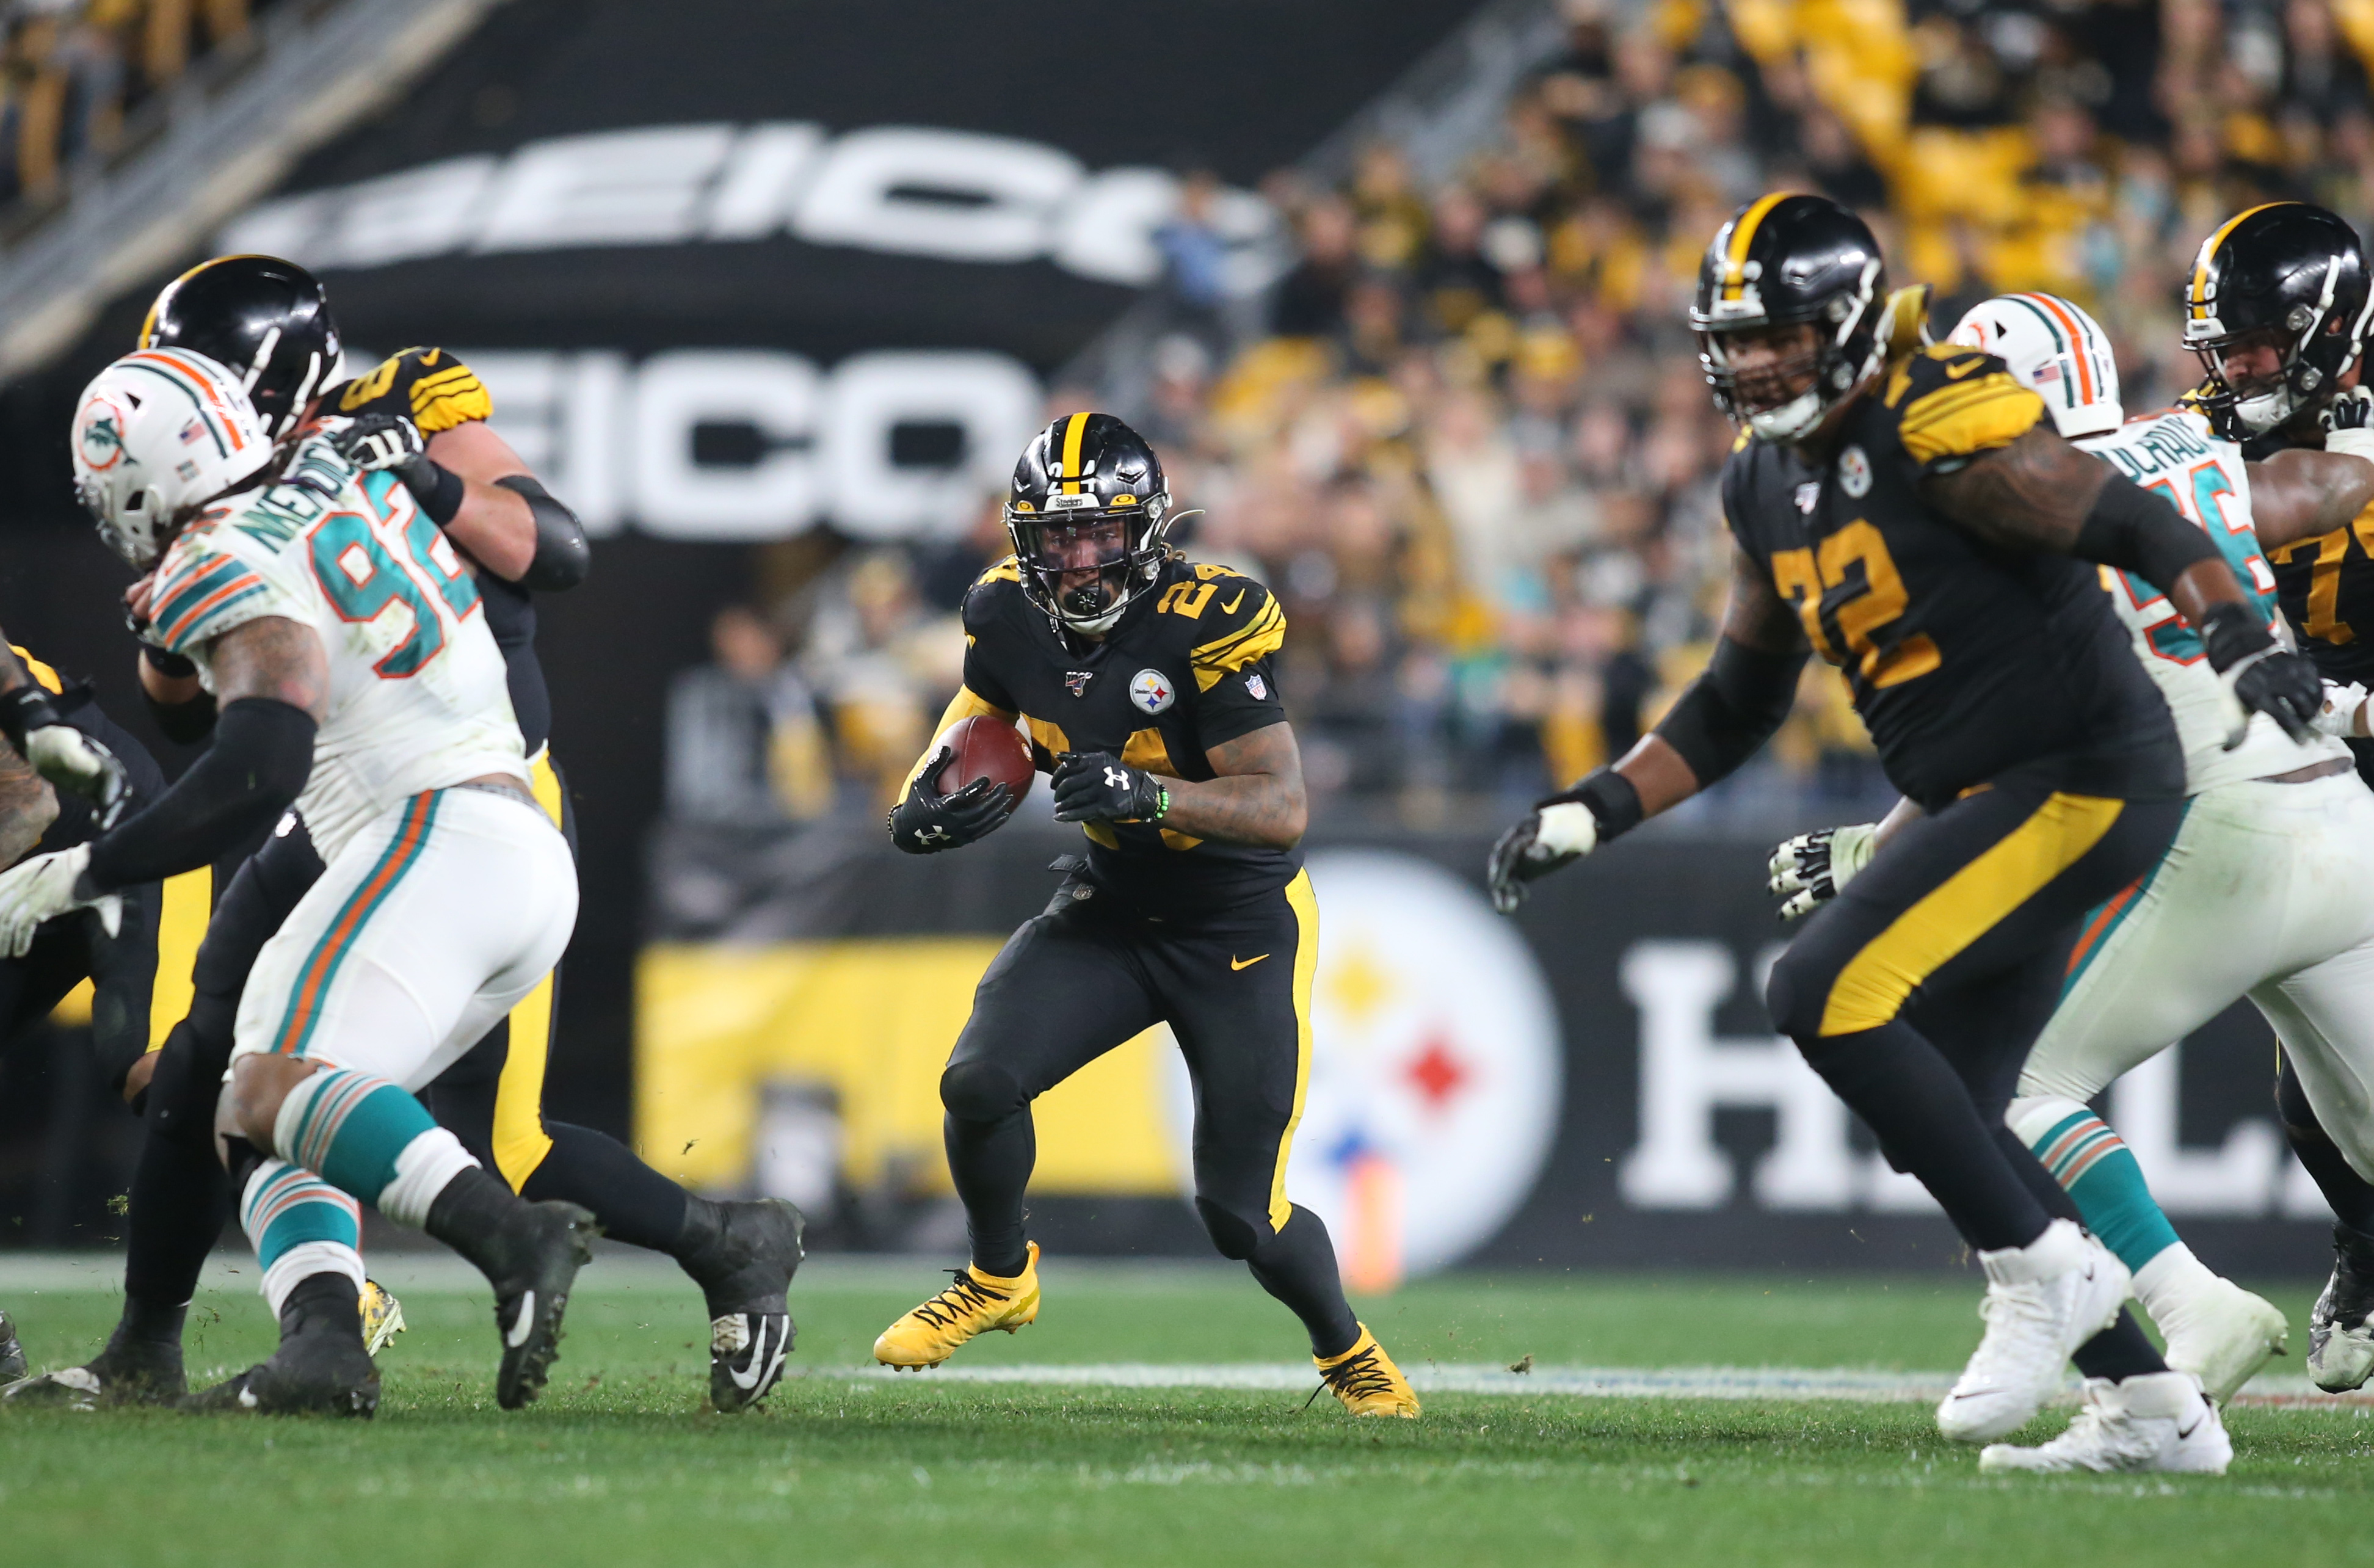 NFL: Miami Dolphins at Pittsburgh Steelers